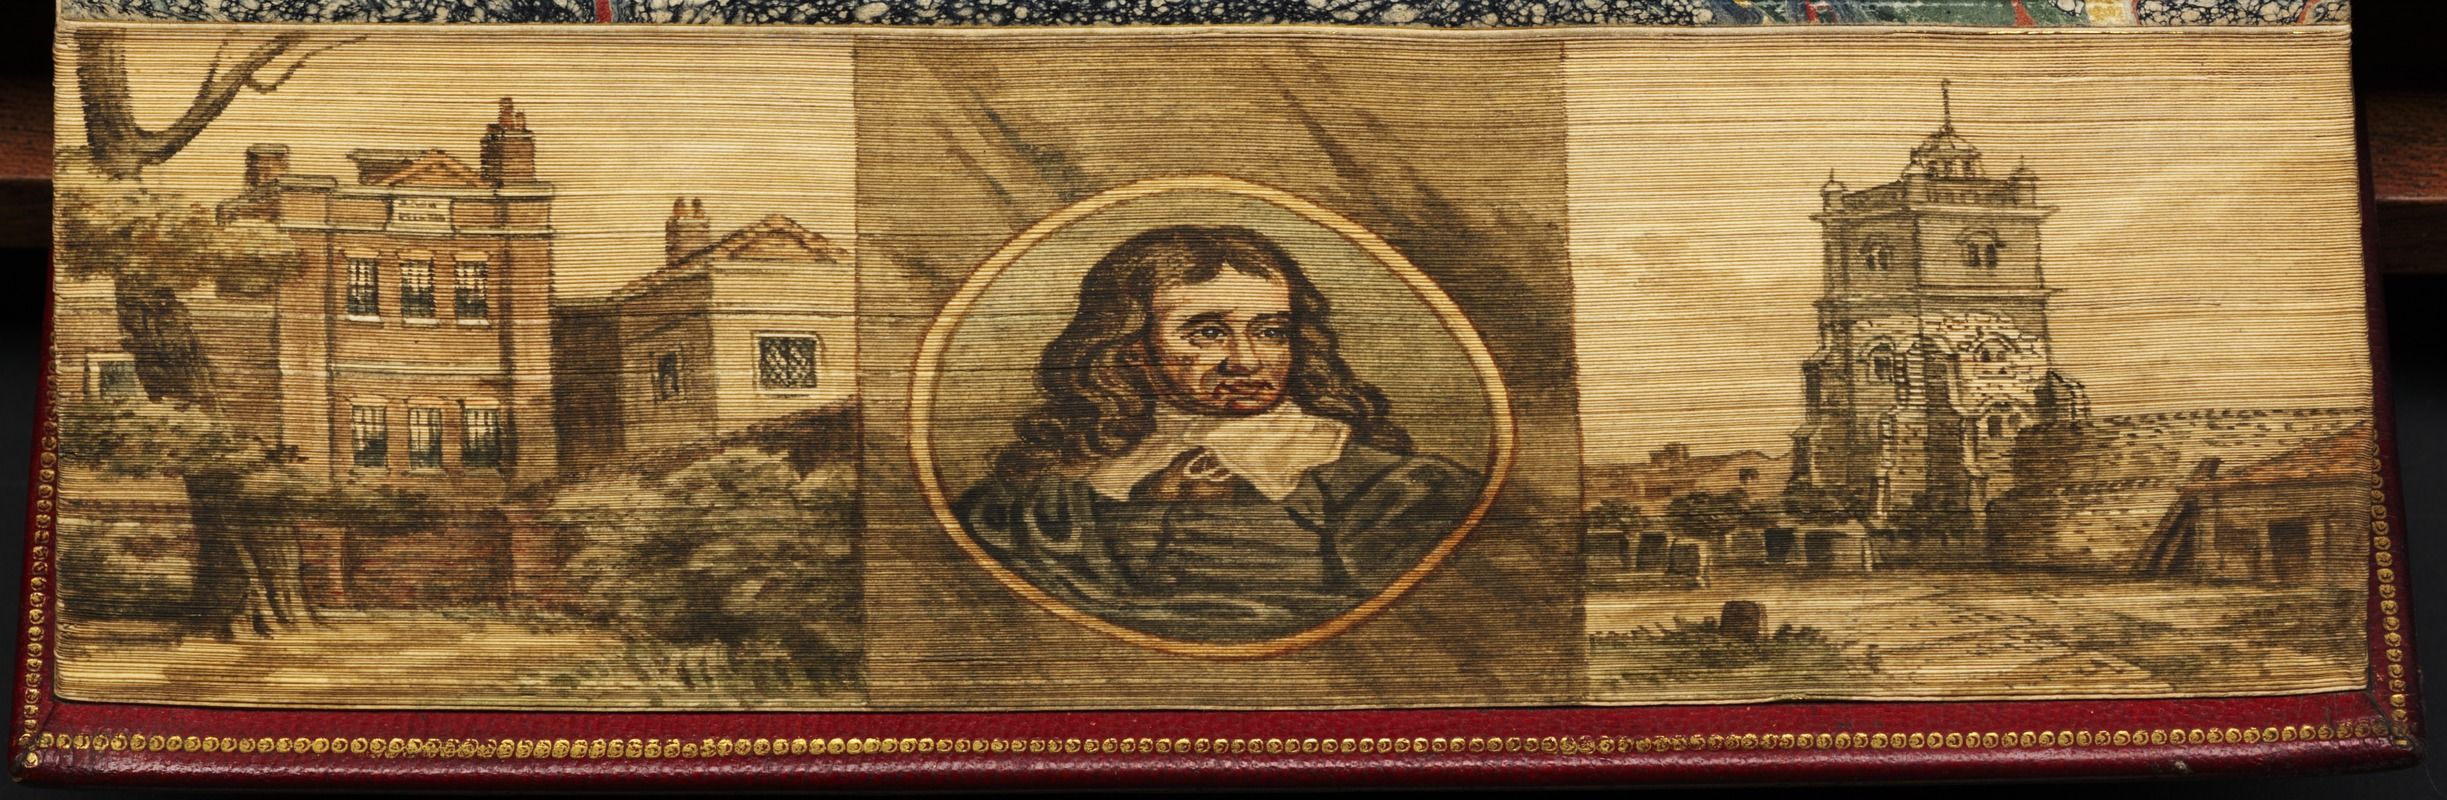 Milton's house, York Street, Tothill fields ; Portrait of Milton ; His burial place at St. Giles, Cripplegate